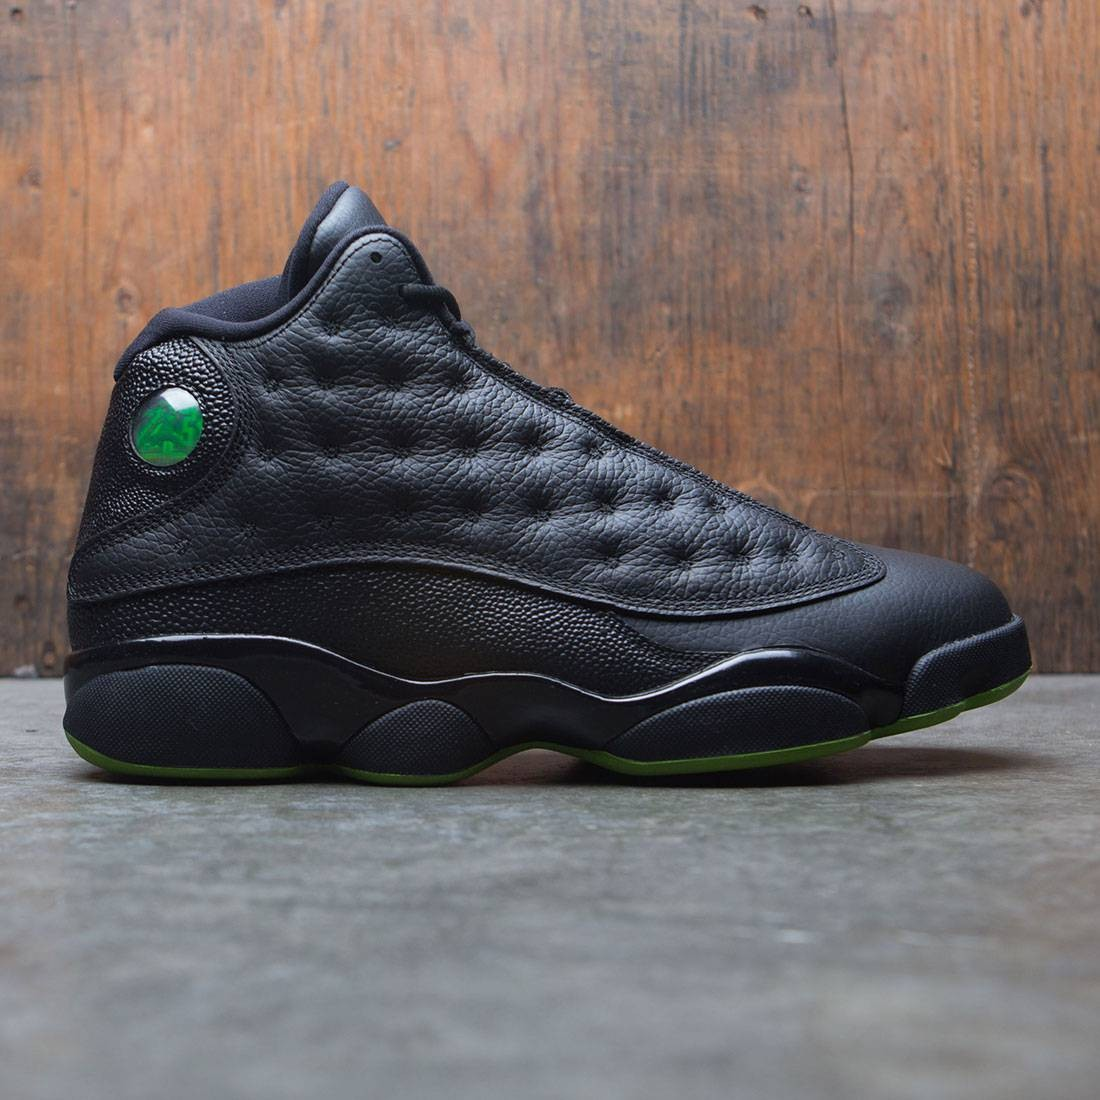 uk availability 2345a ebc75 jordan men air jordan 13 retro black altitude green